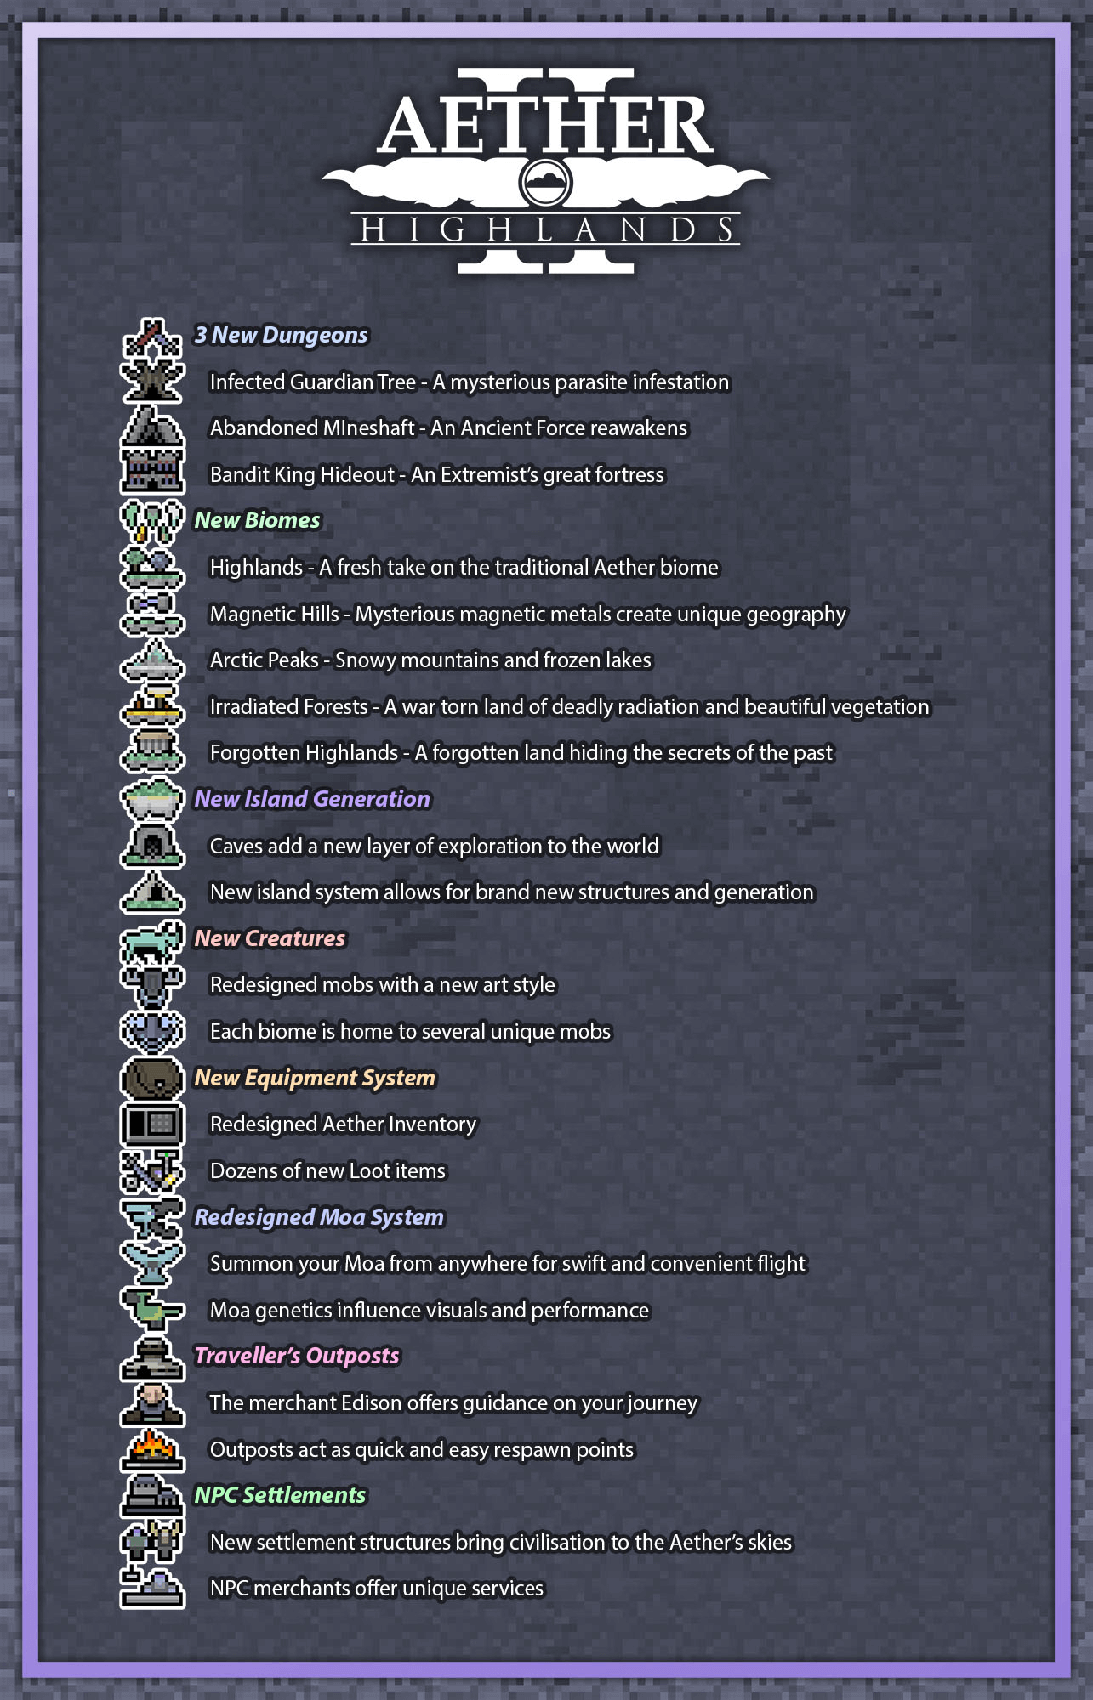 Aether-2-Mod-Features-1.png